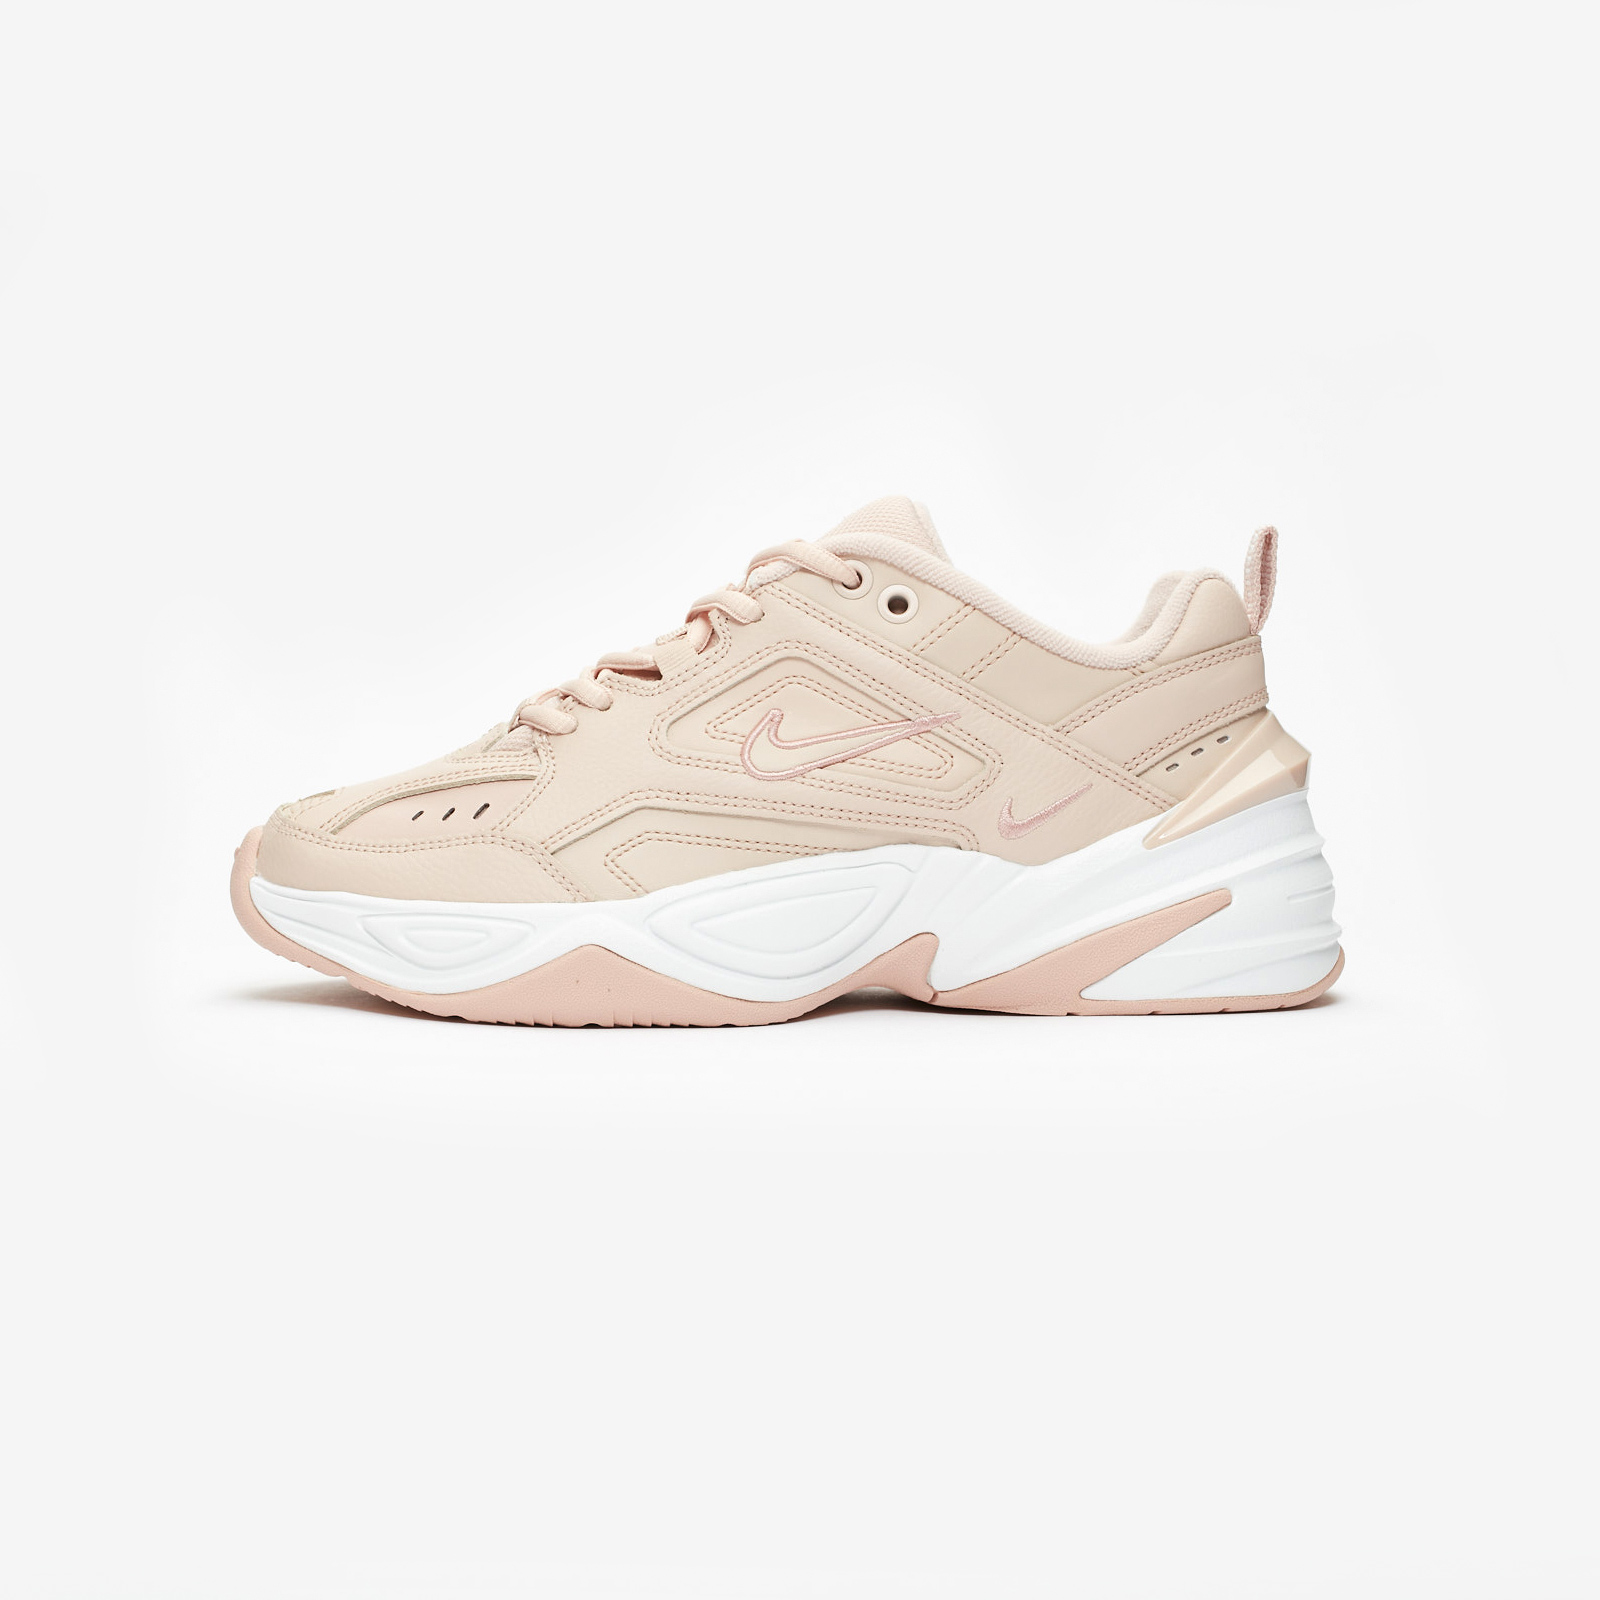 premium selection separation shoes 100% top quality Nike Wmns M2K Tekno - Ao3108-202 - Sneakersnstuff | sneakers ...